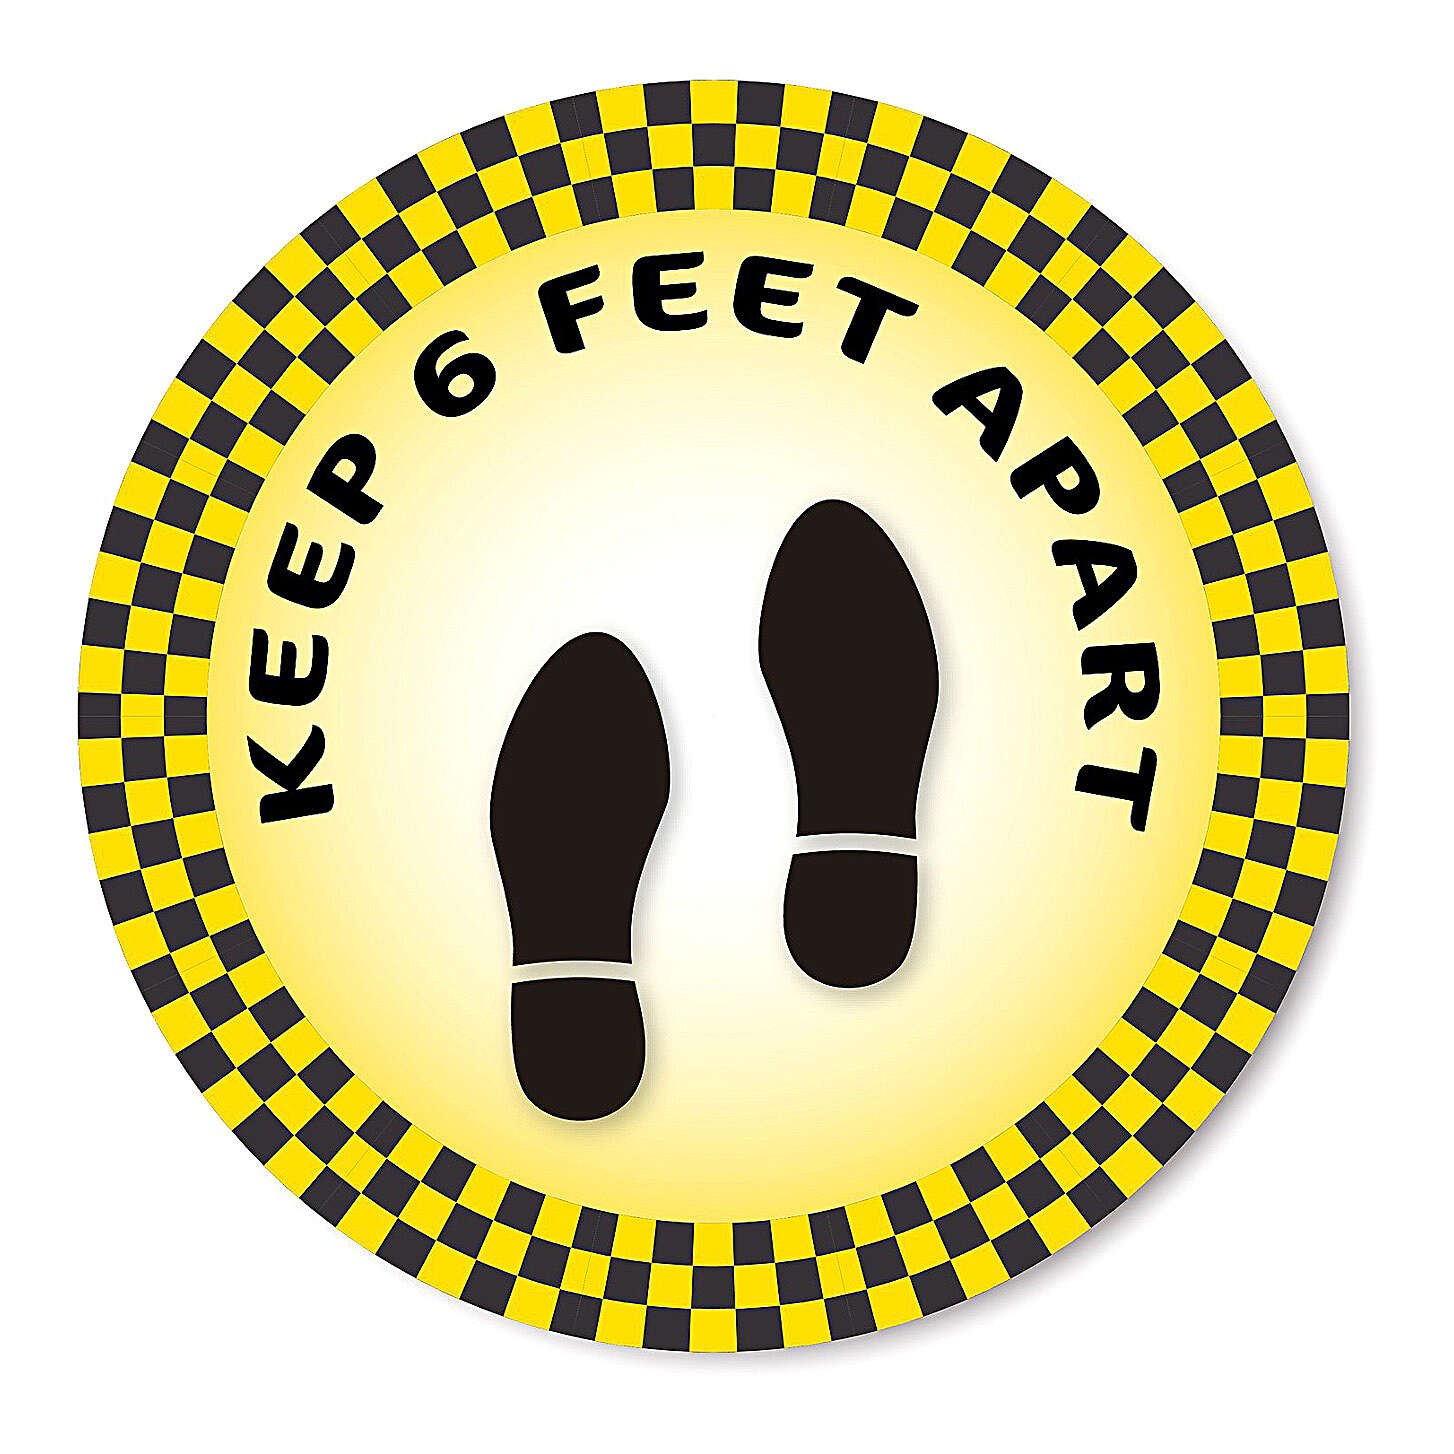 KEEP 6 FEET APART removable stickers 6 pieces 15 cm 3